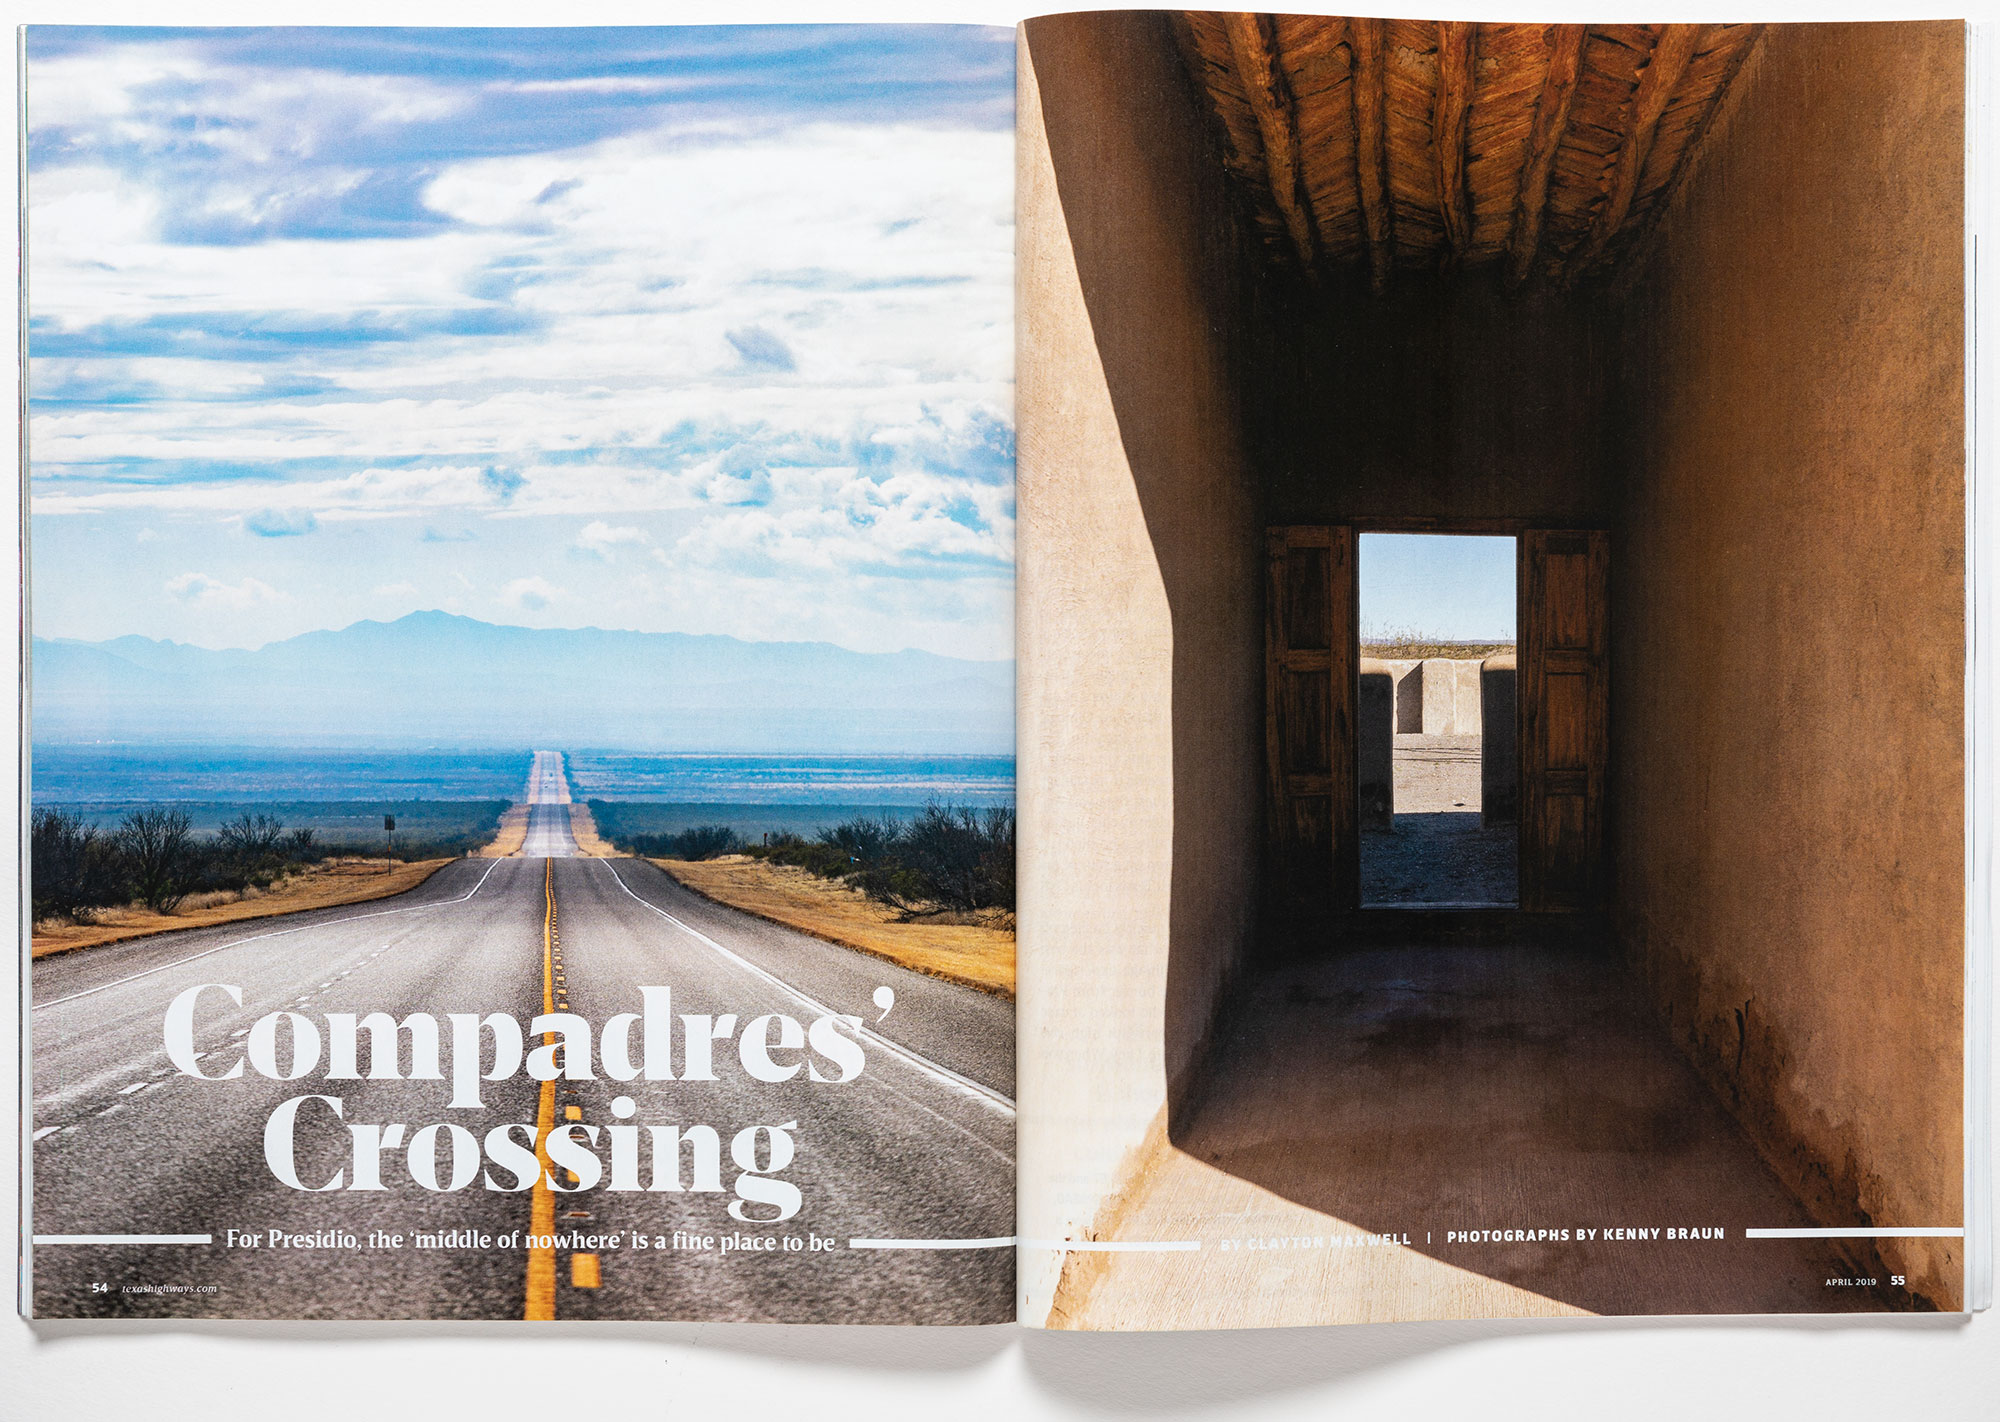 Texas Highways Magazine - Compadre